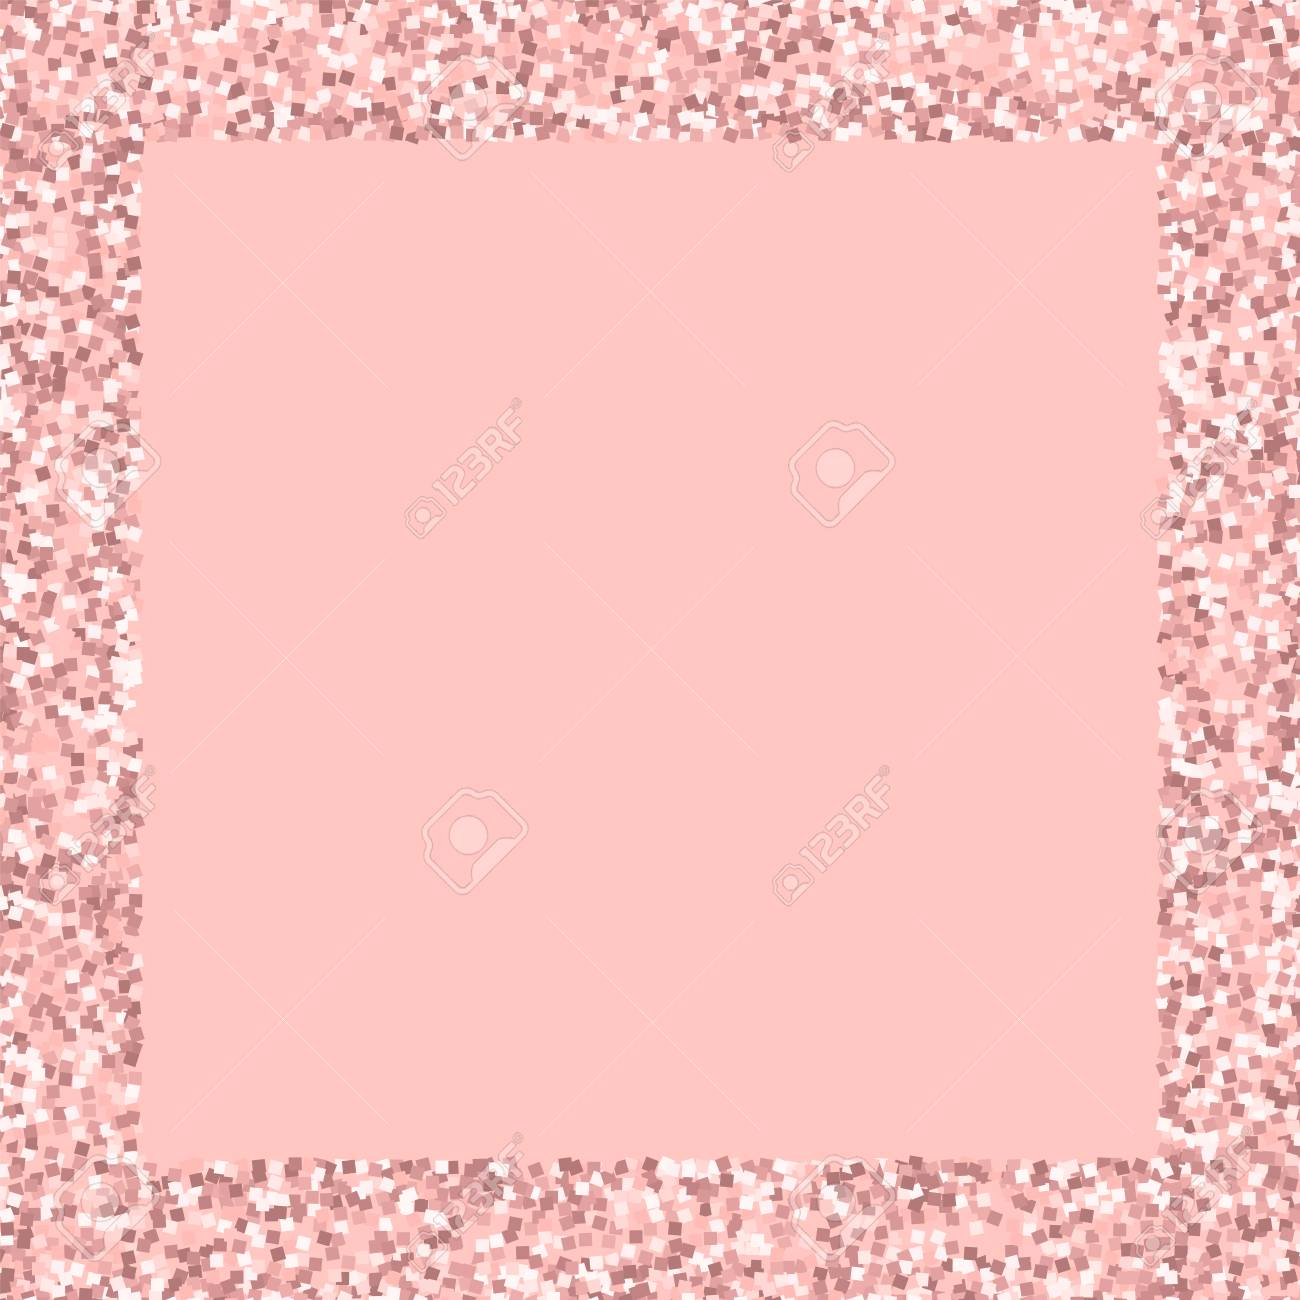 Pink Gold Glitter Square Scattered Border With On Background Stock